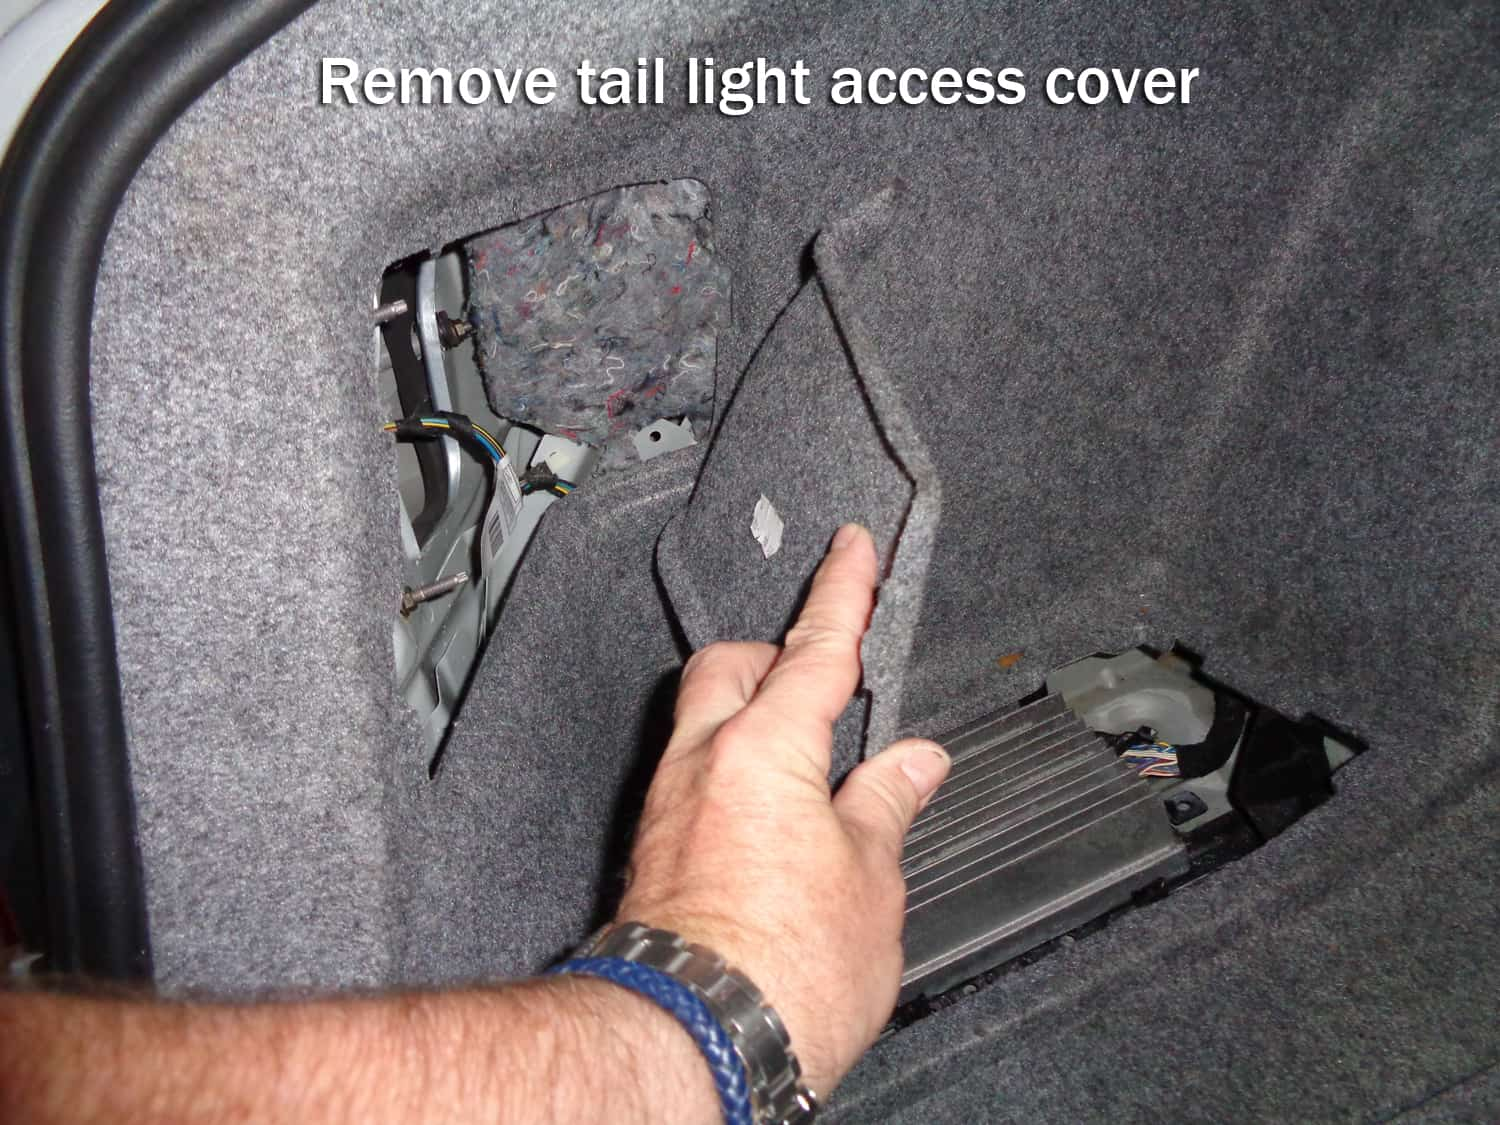 BMW E90 Trunk Leak - remove the tail light access cover